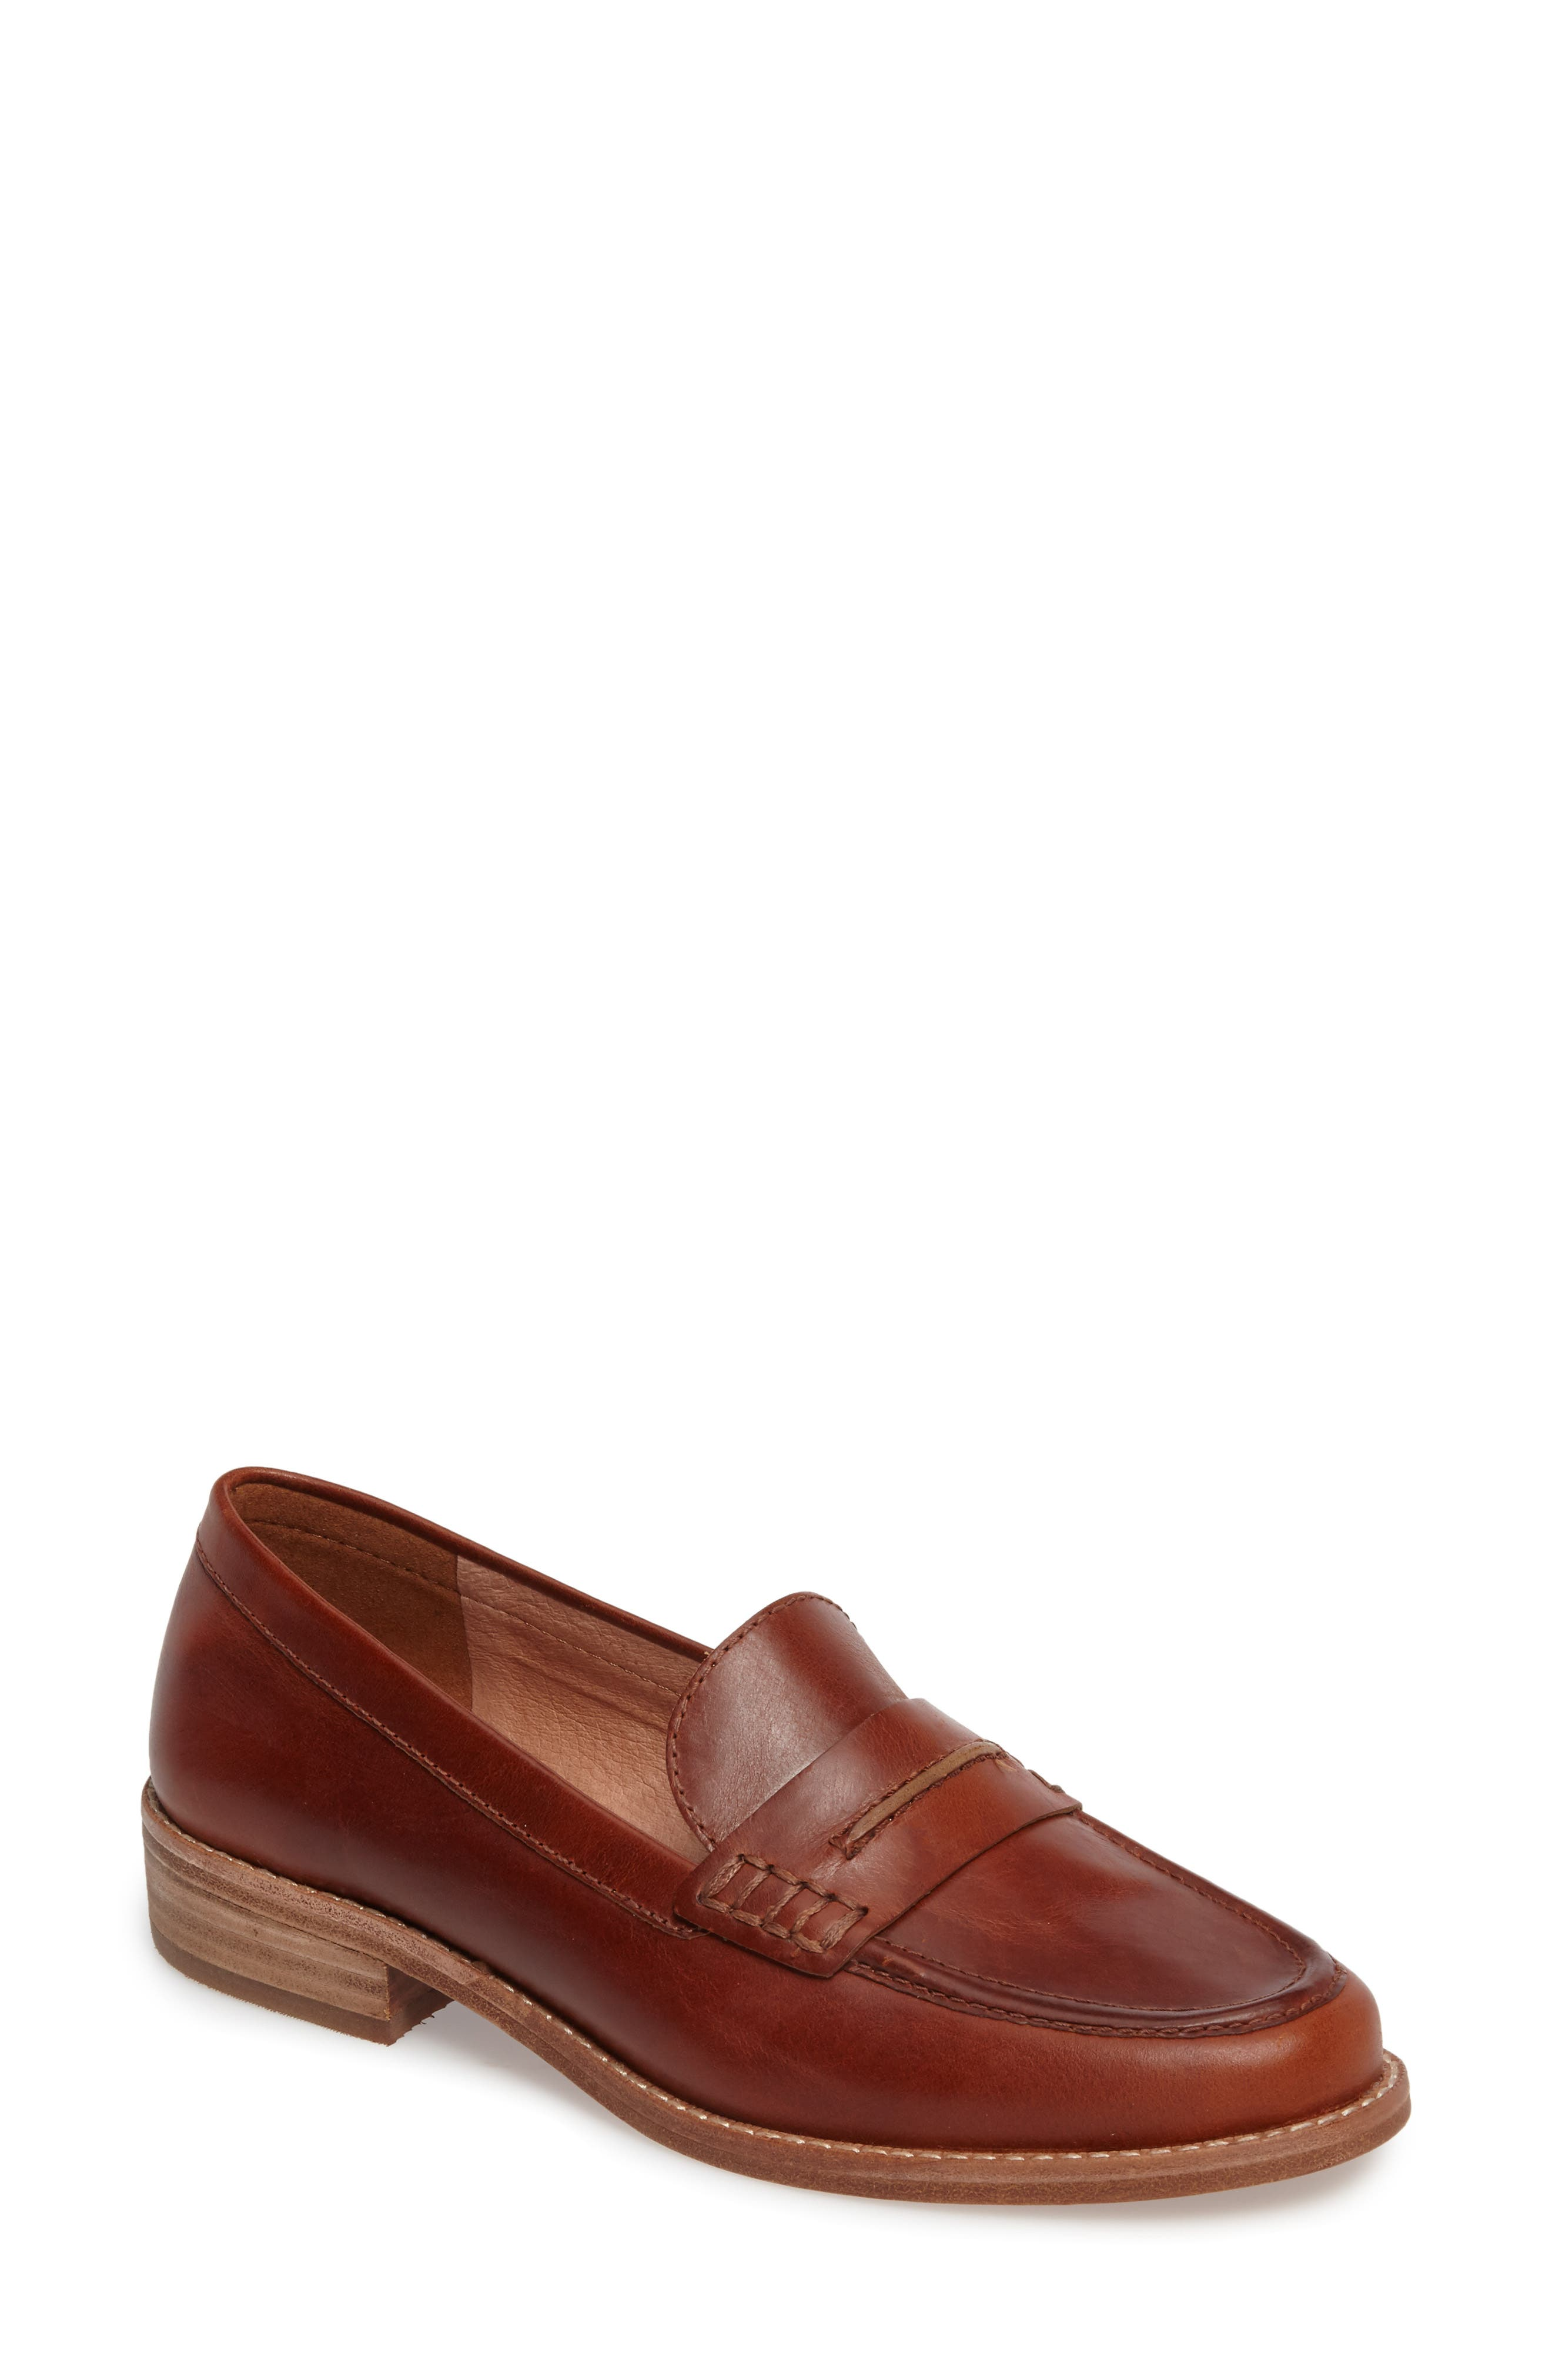 Madewell | The Elinor Loafer